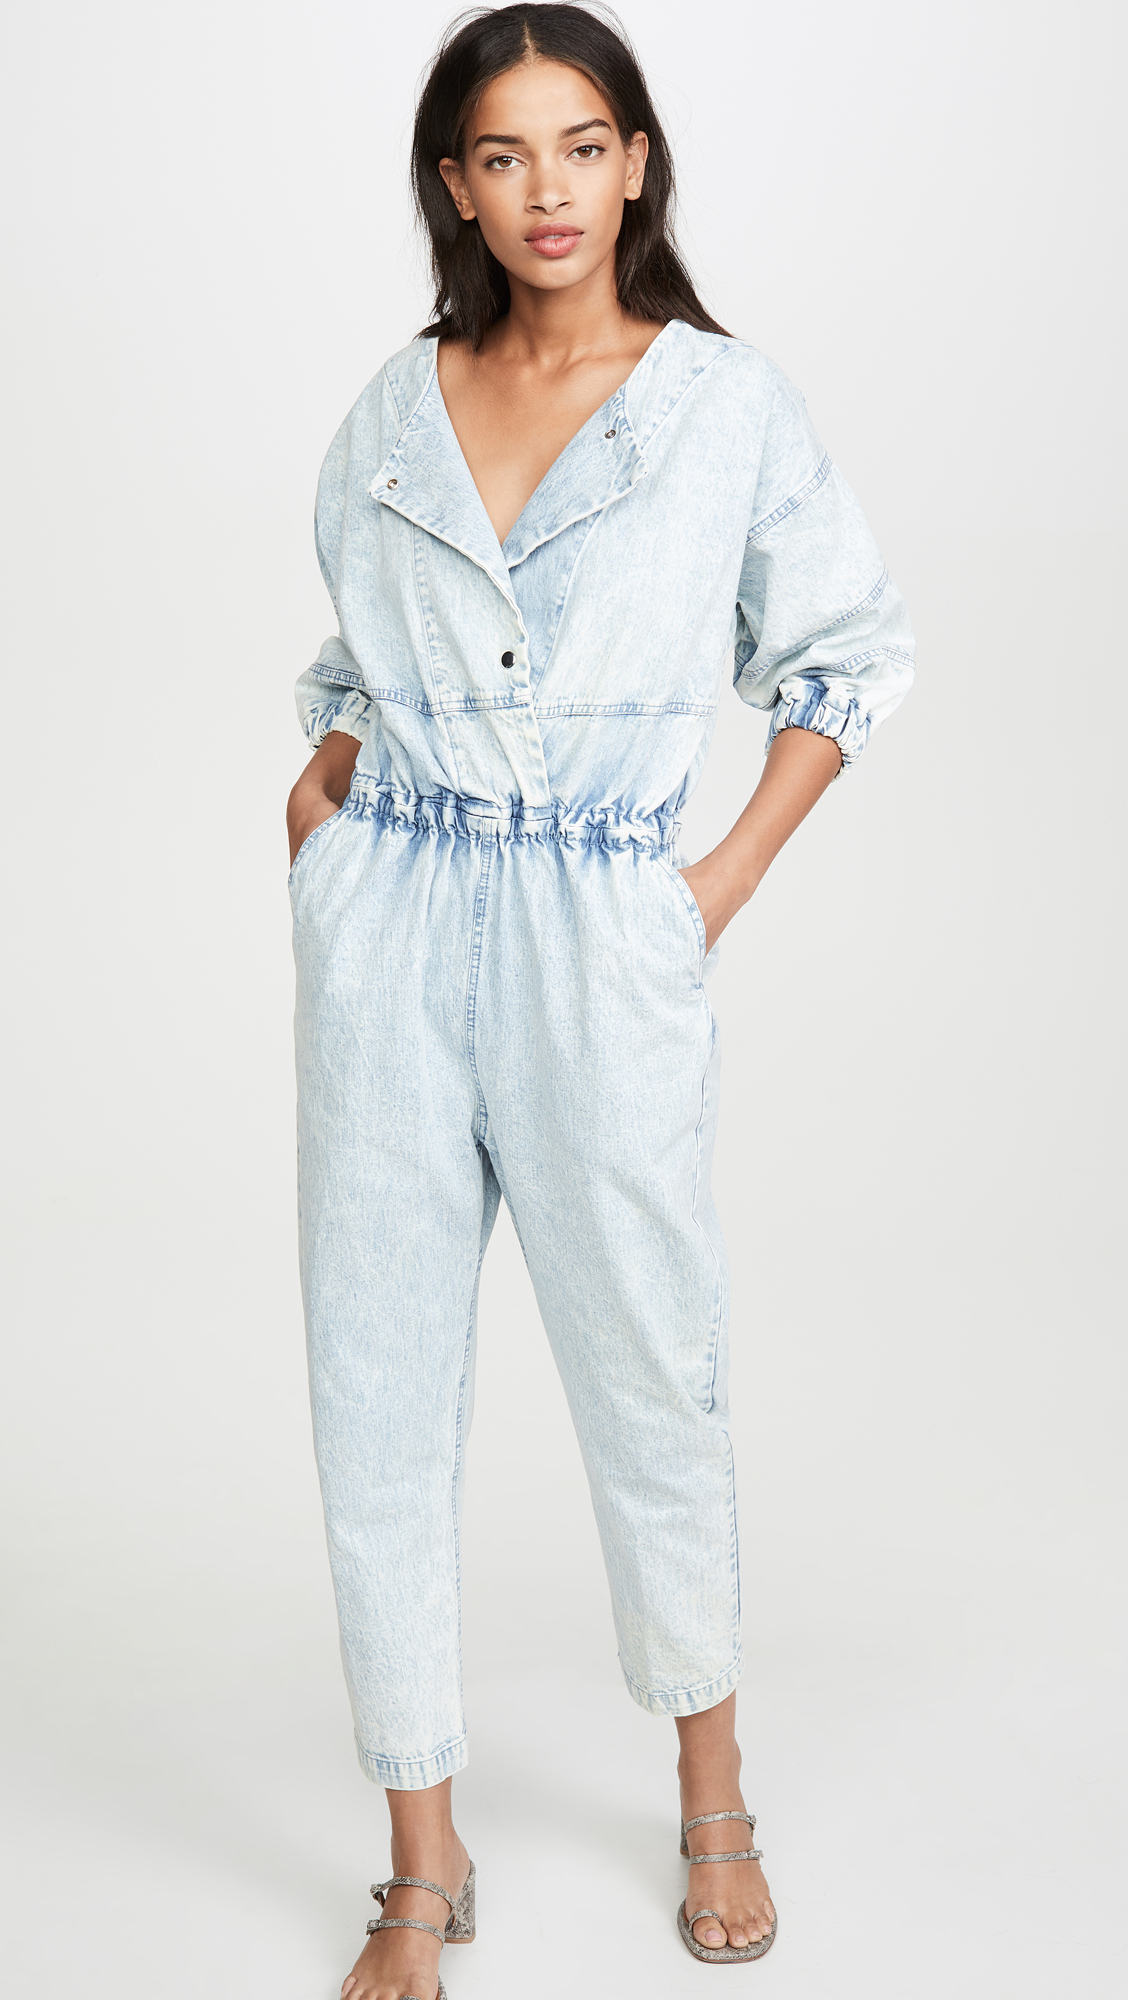 Jeans of the Week: Rachel Comey Holt Jumpsuit Is New Year's Eve Perfection